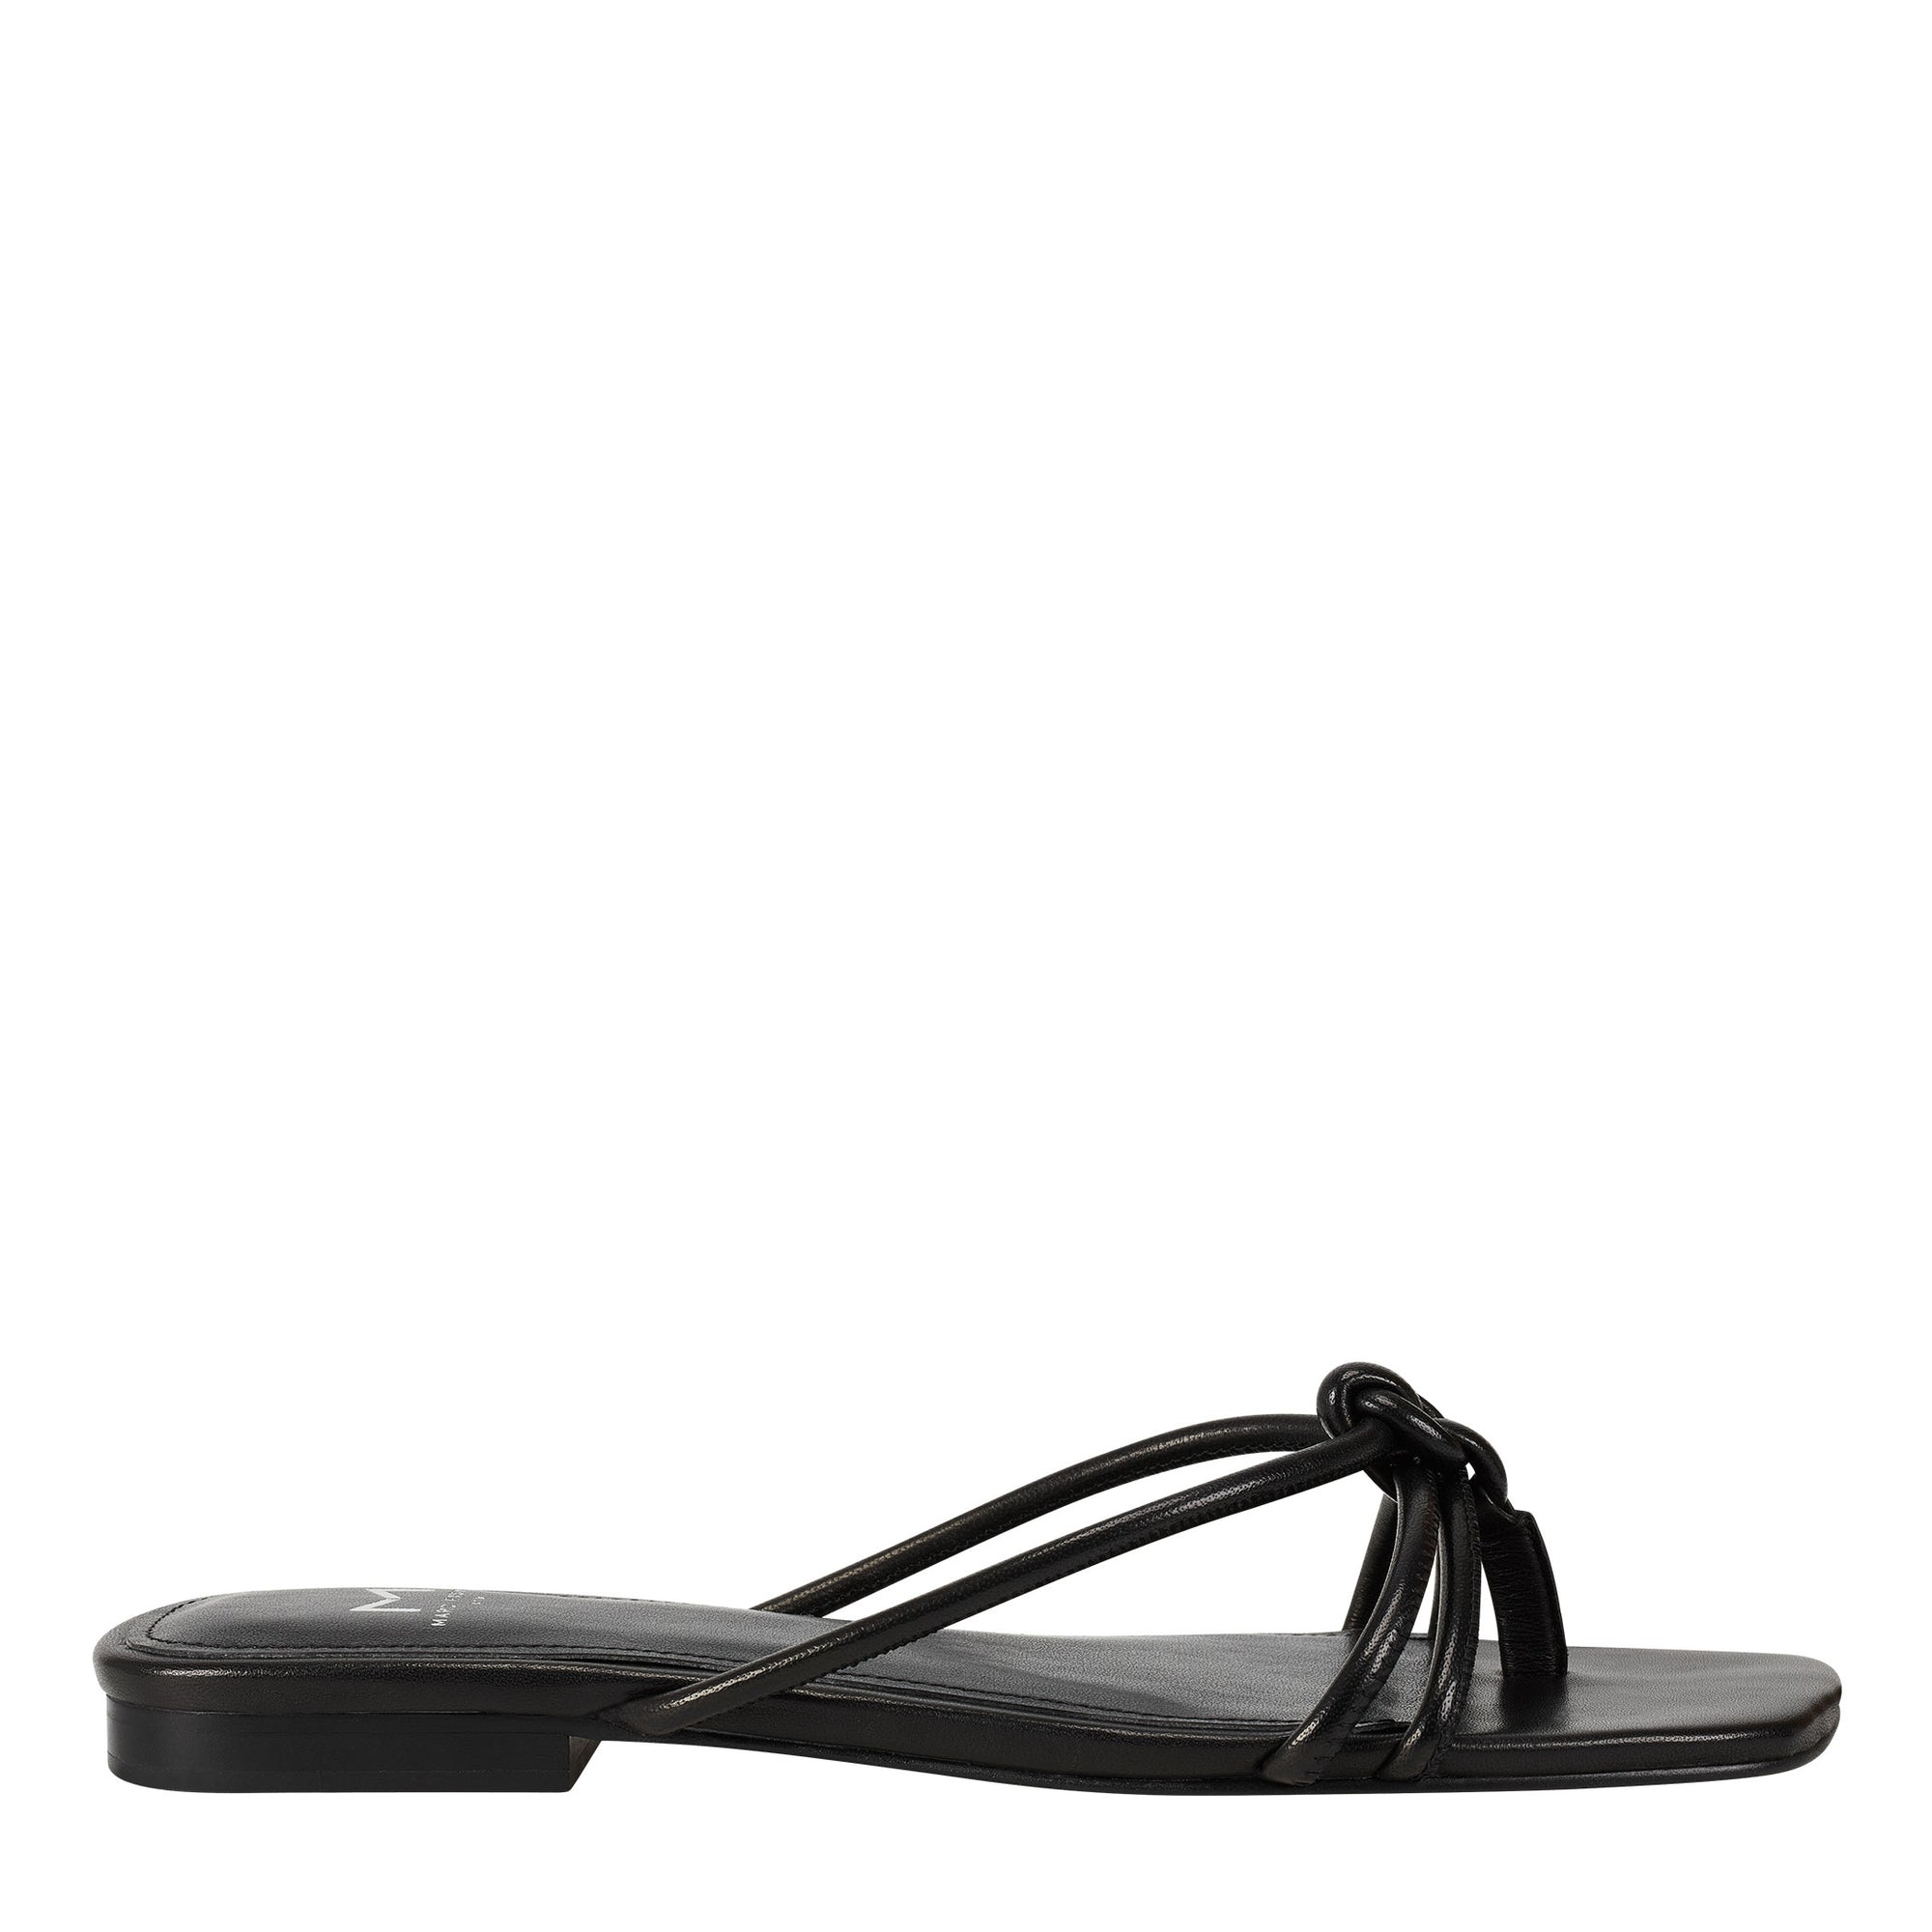 monty-flat-slide-in-black-leather